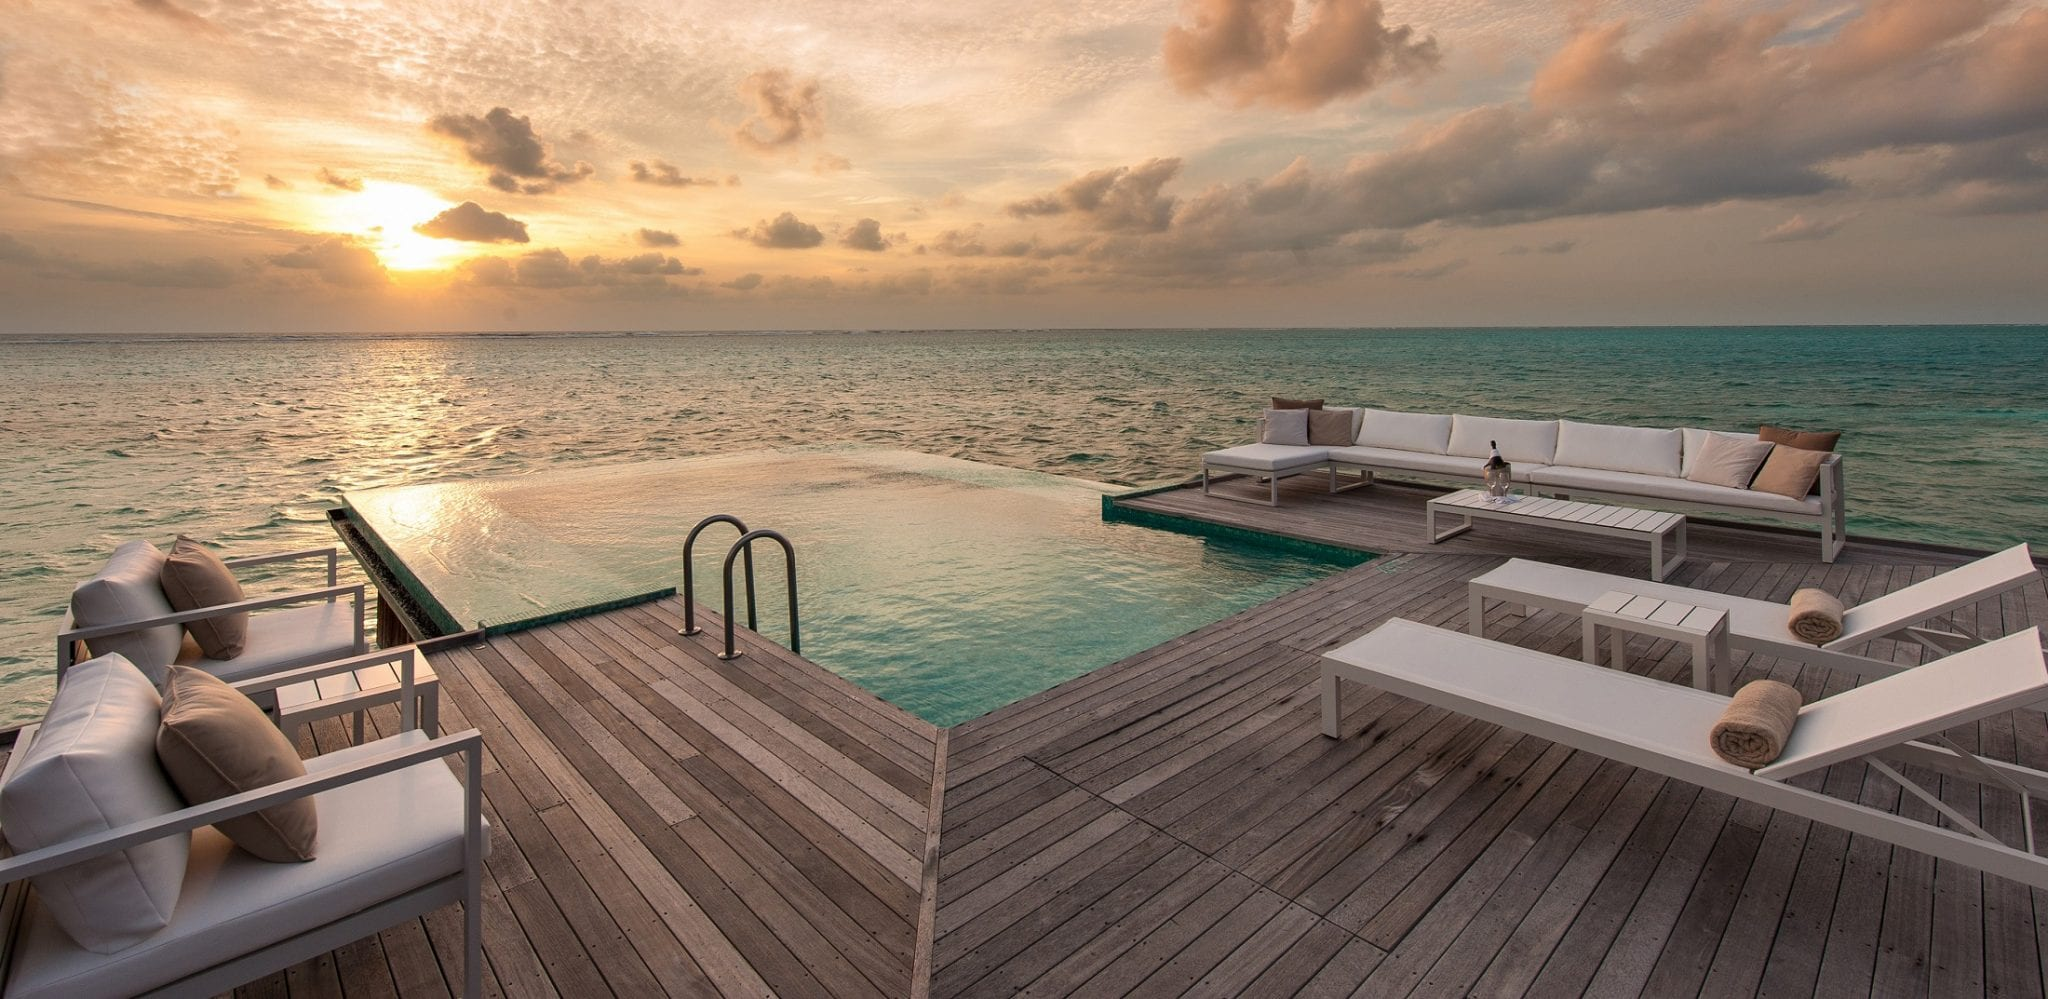 Over-the-water infinity pool at Conrad Maldives Rangali Island